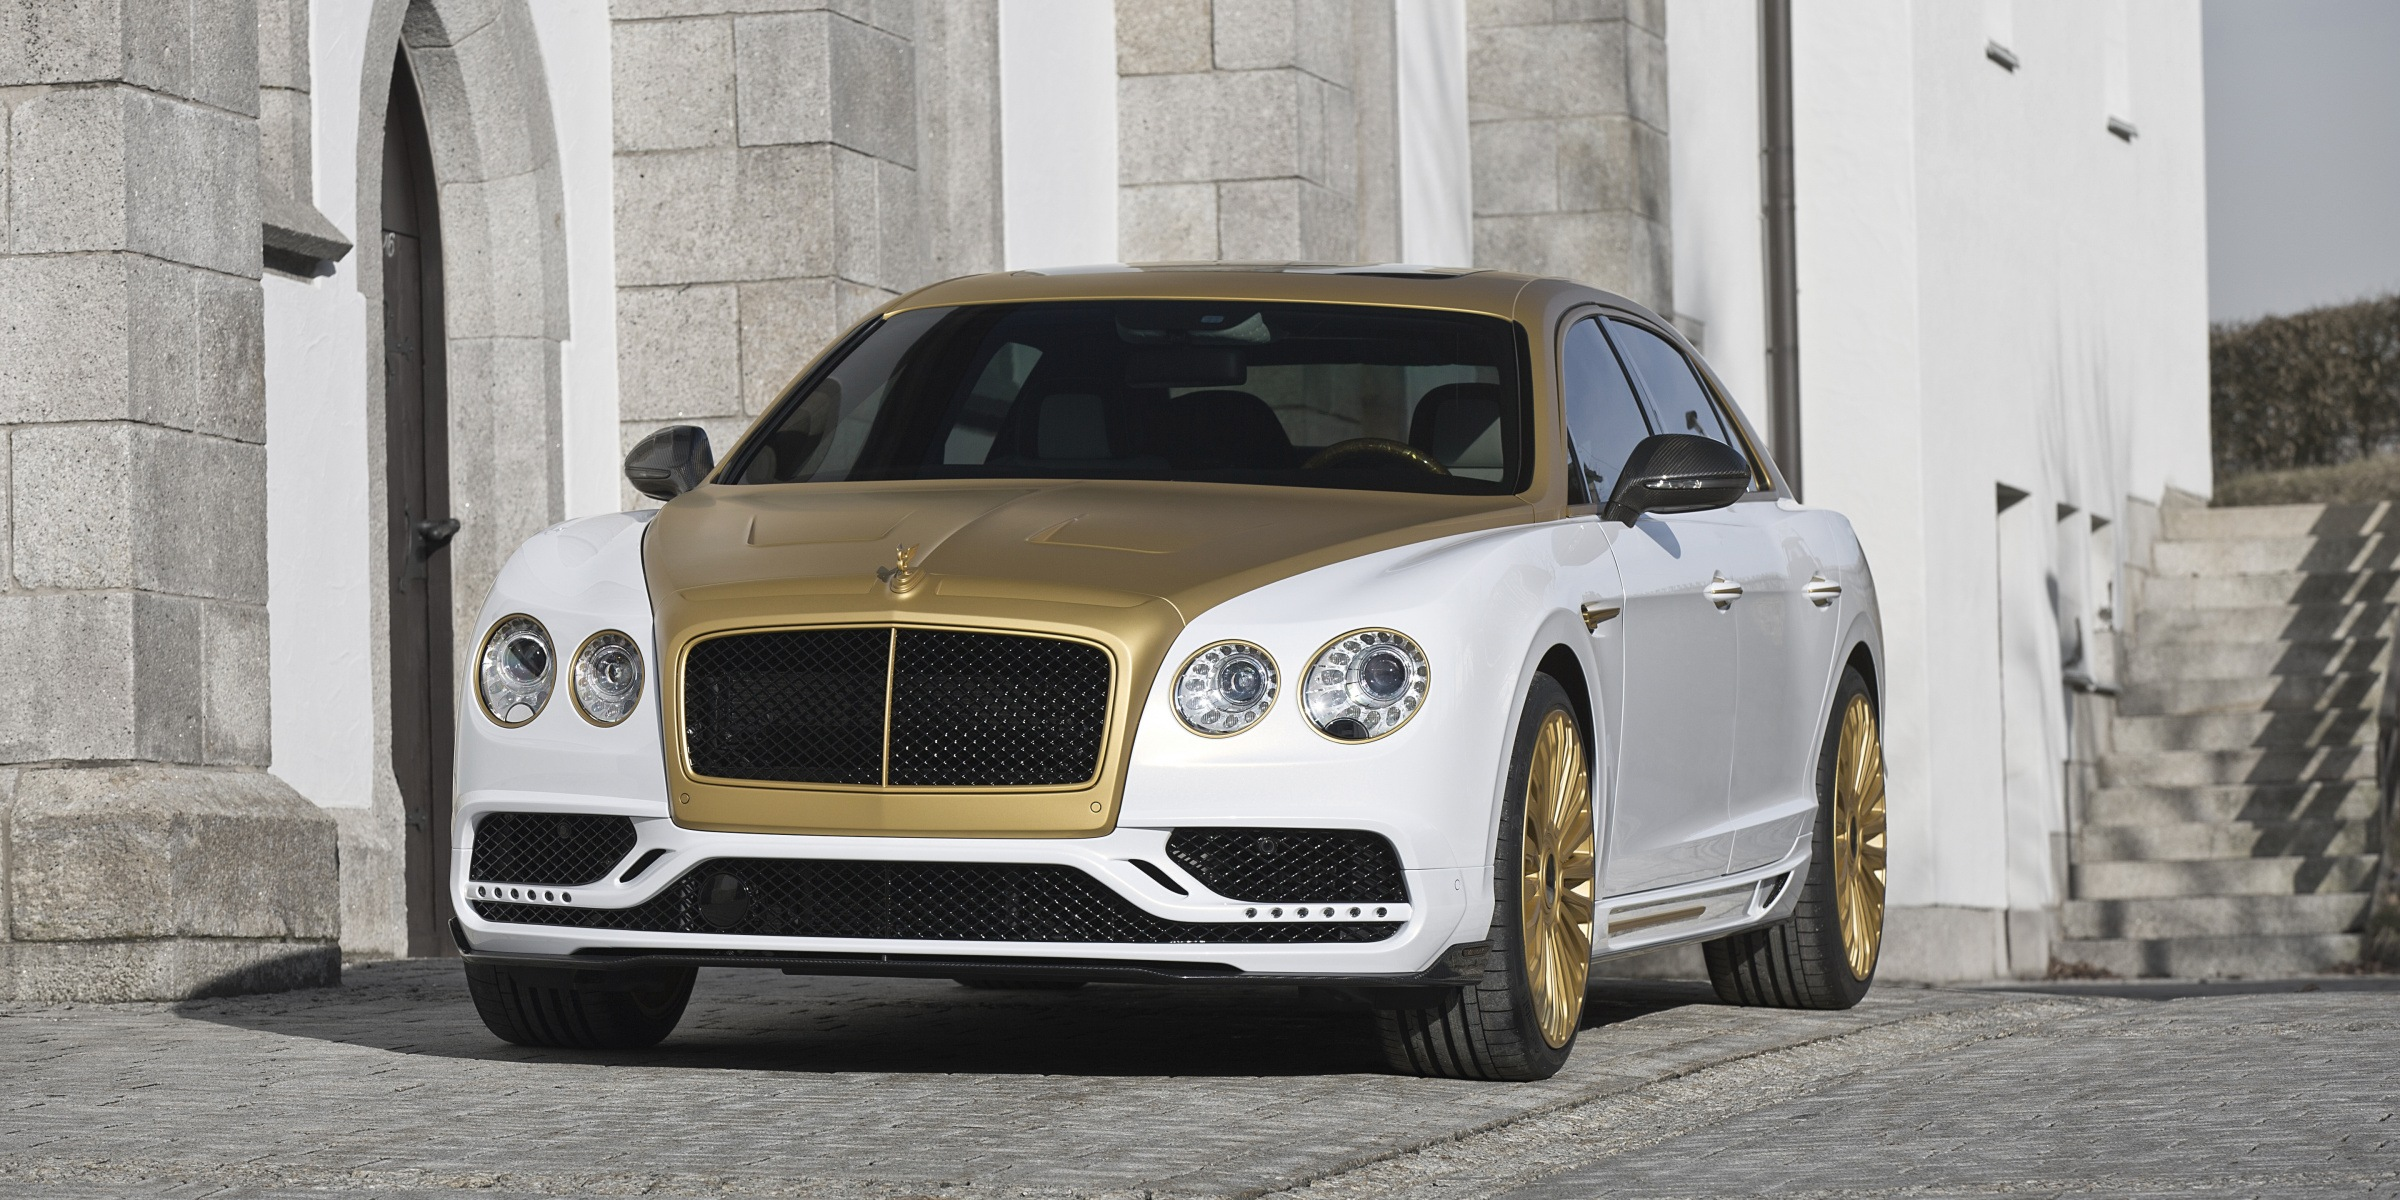 mansory_bentley_flying_spur_new_01.jpg